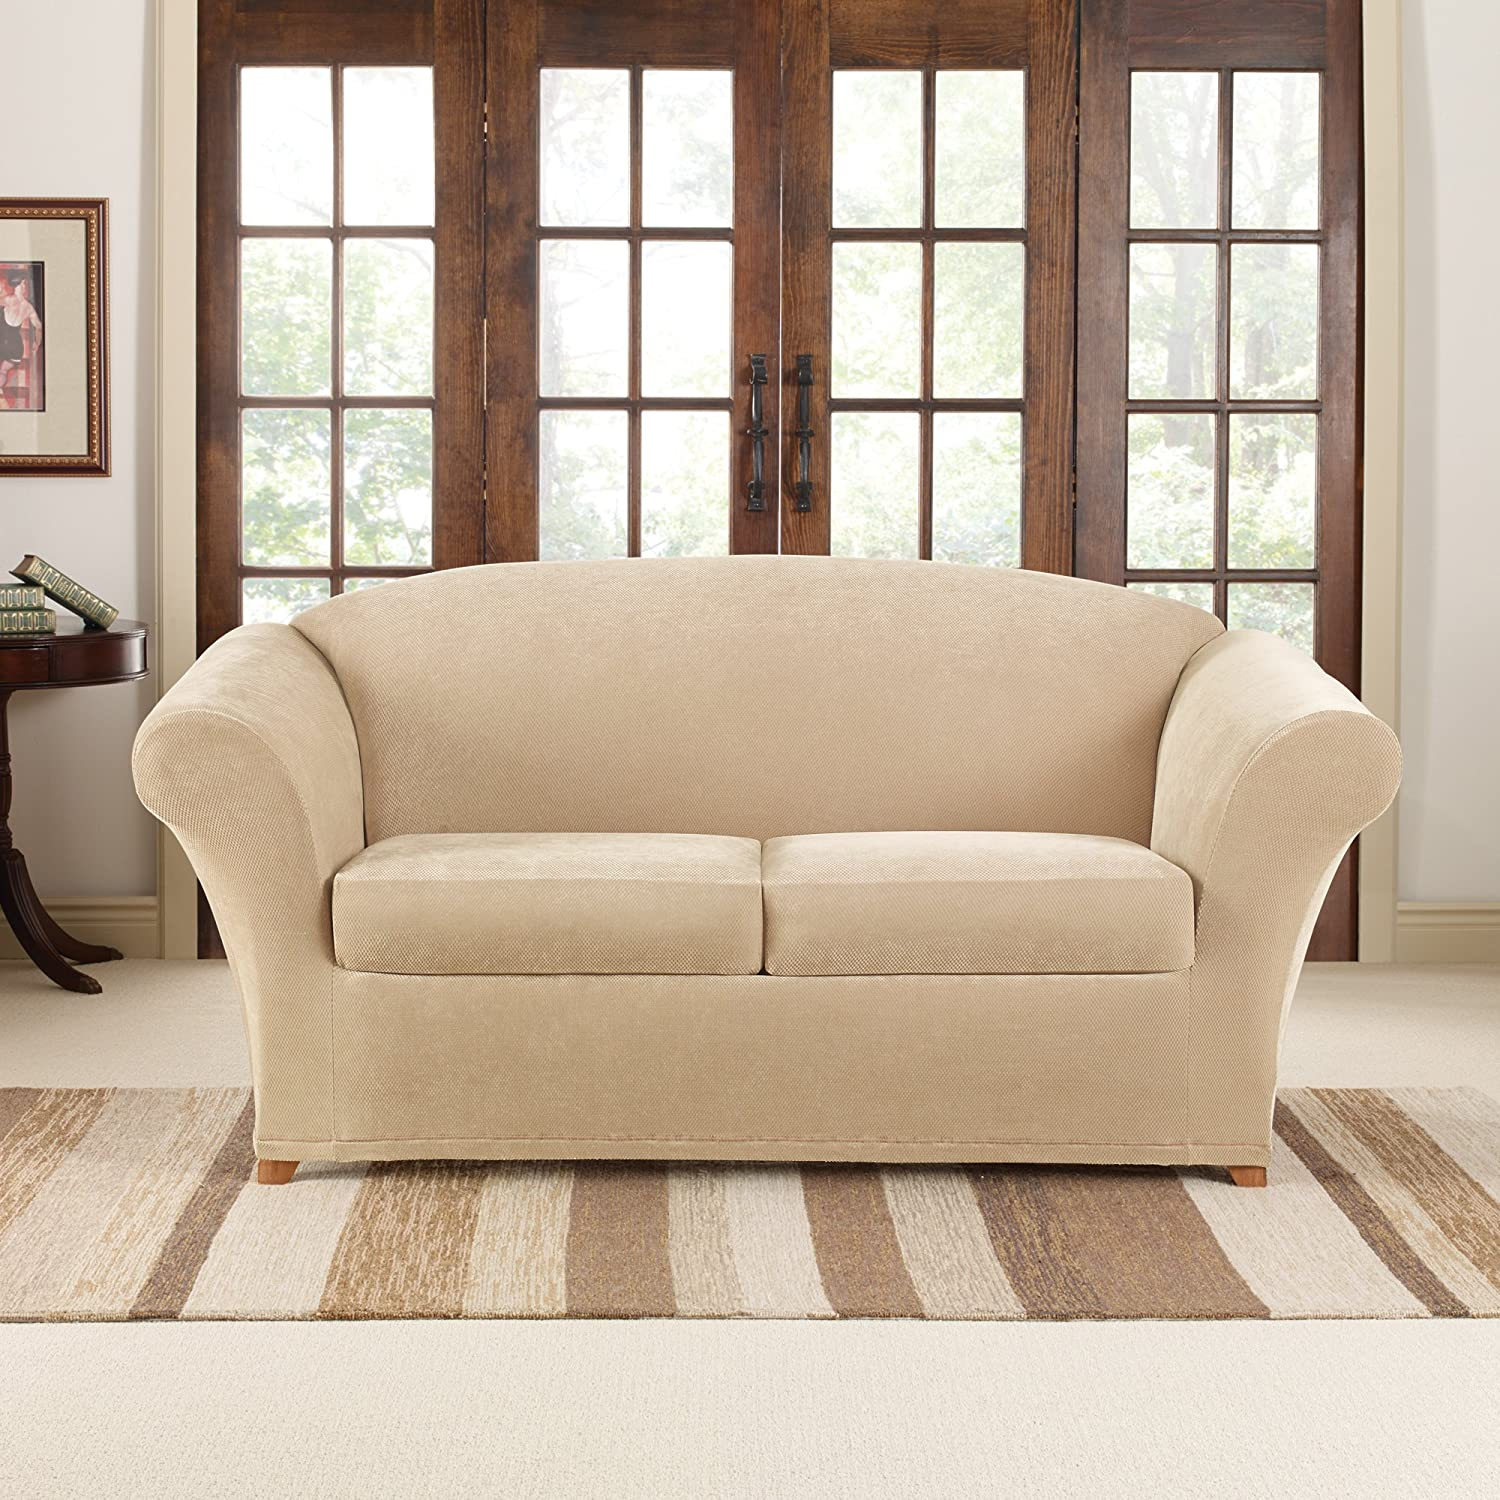 SURE FIT Stretch Pique 2-Seat Individual Cushion Loveseat Covers Cream SF43507